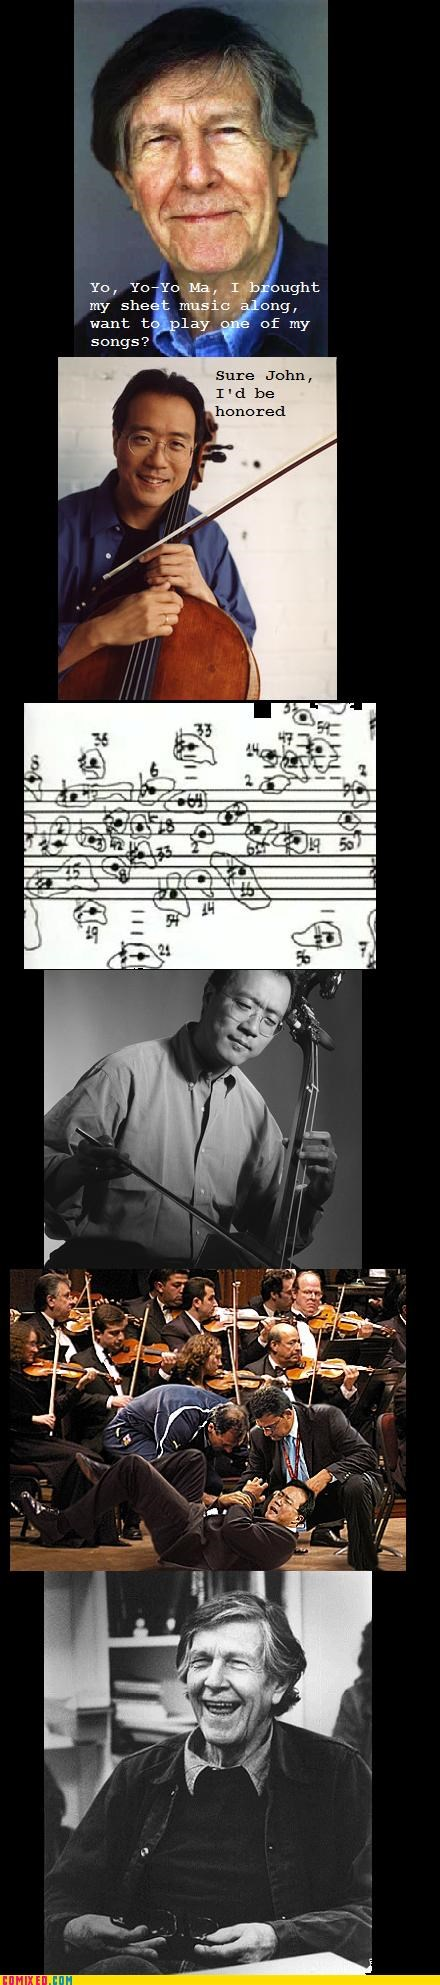 john cage,lol,Music,ouch,surprisingly highbrow,Yo-Yo Ma